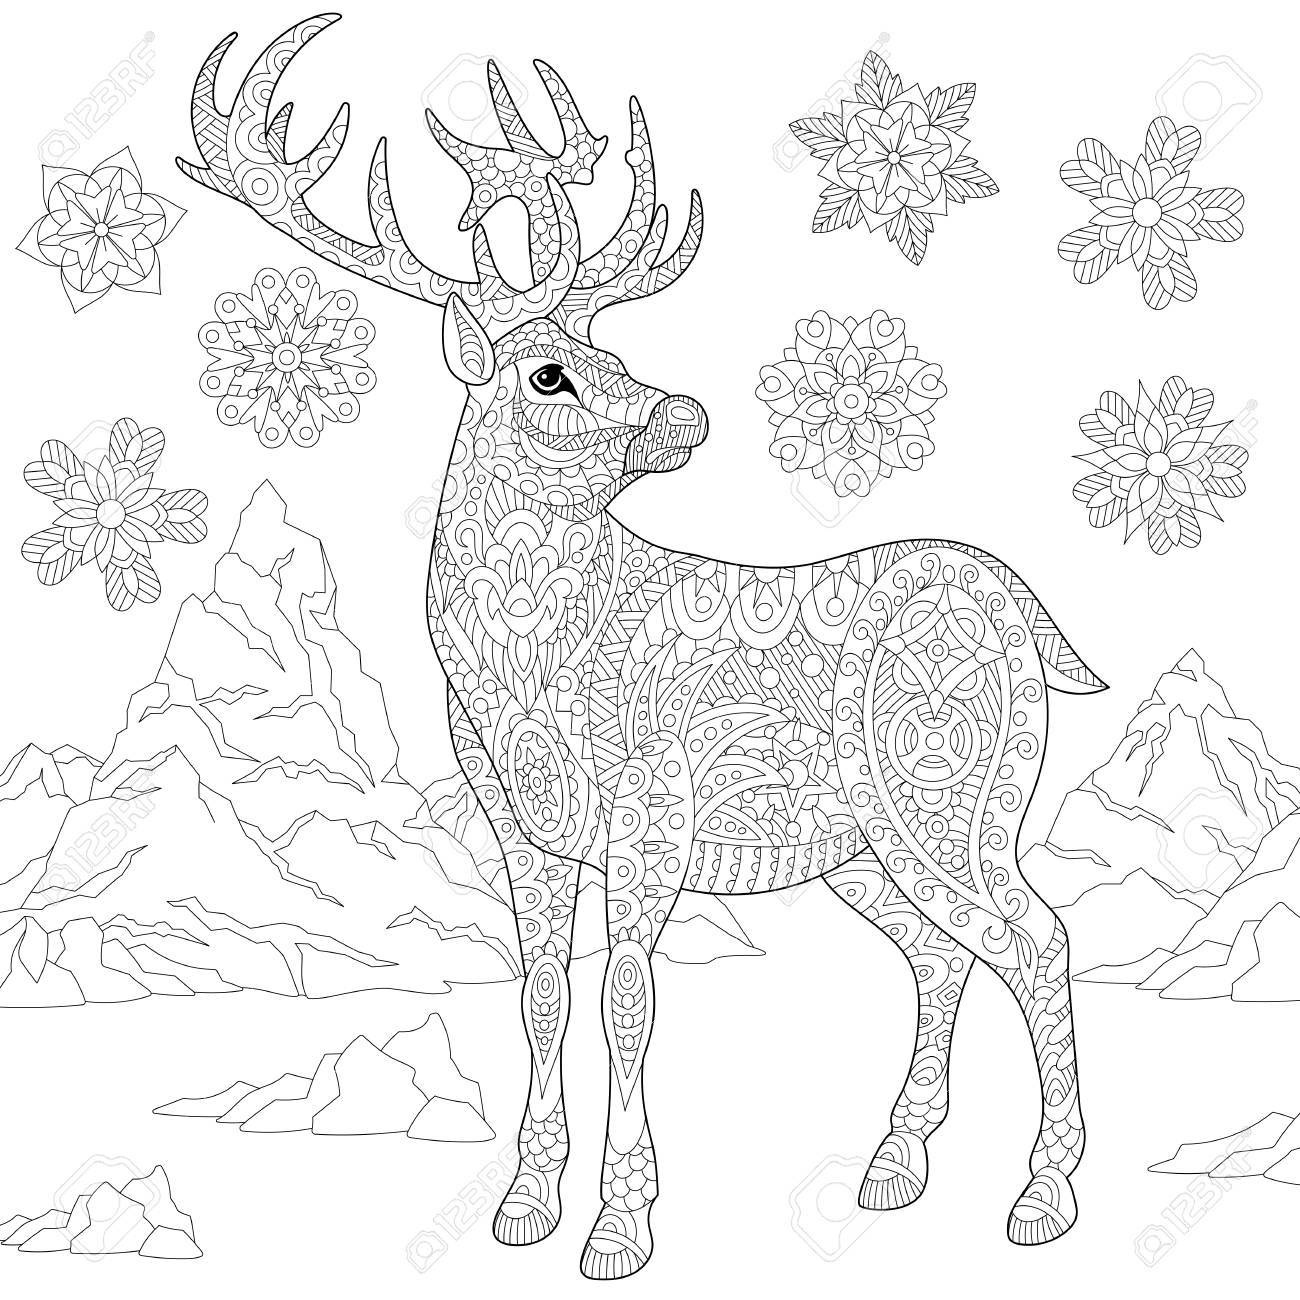 Coloring Page Of Deer (reindeer) And Winter Snowflakes. Freehand Sketch  Drawing For Adult